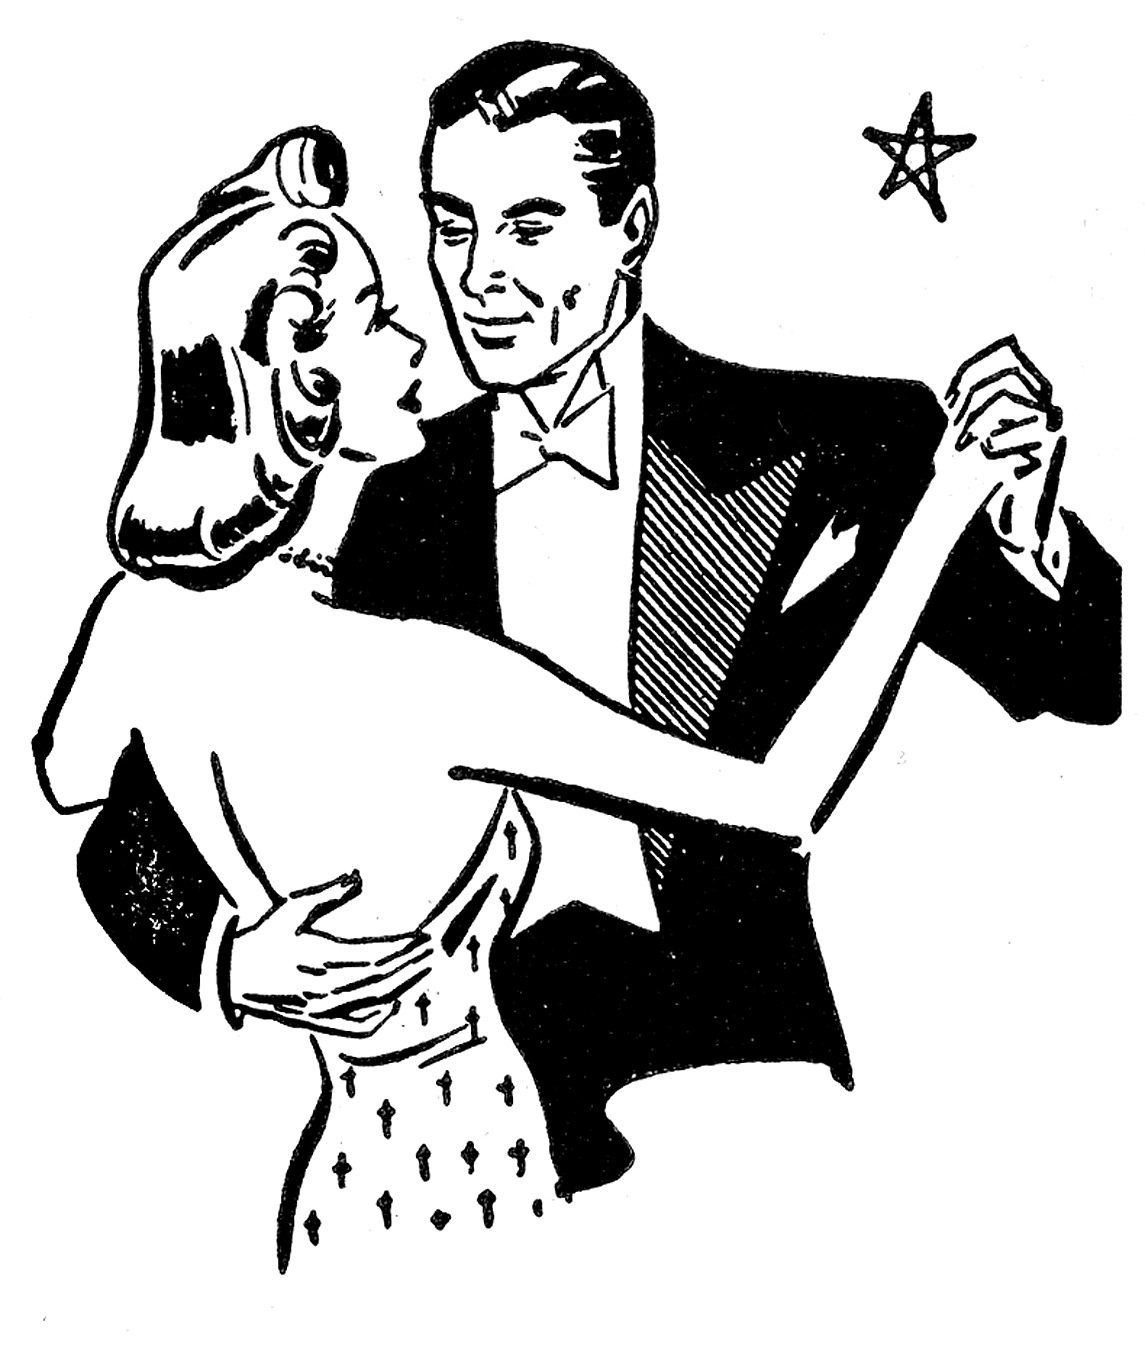 Dance clipart vintage. Retro clip art couples